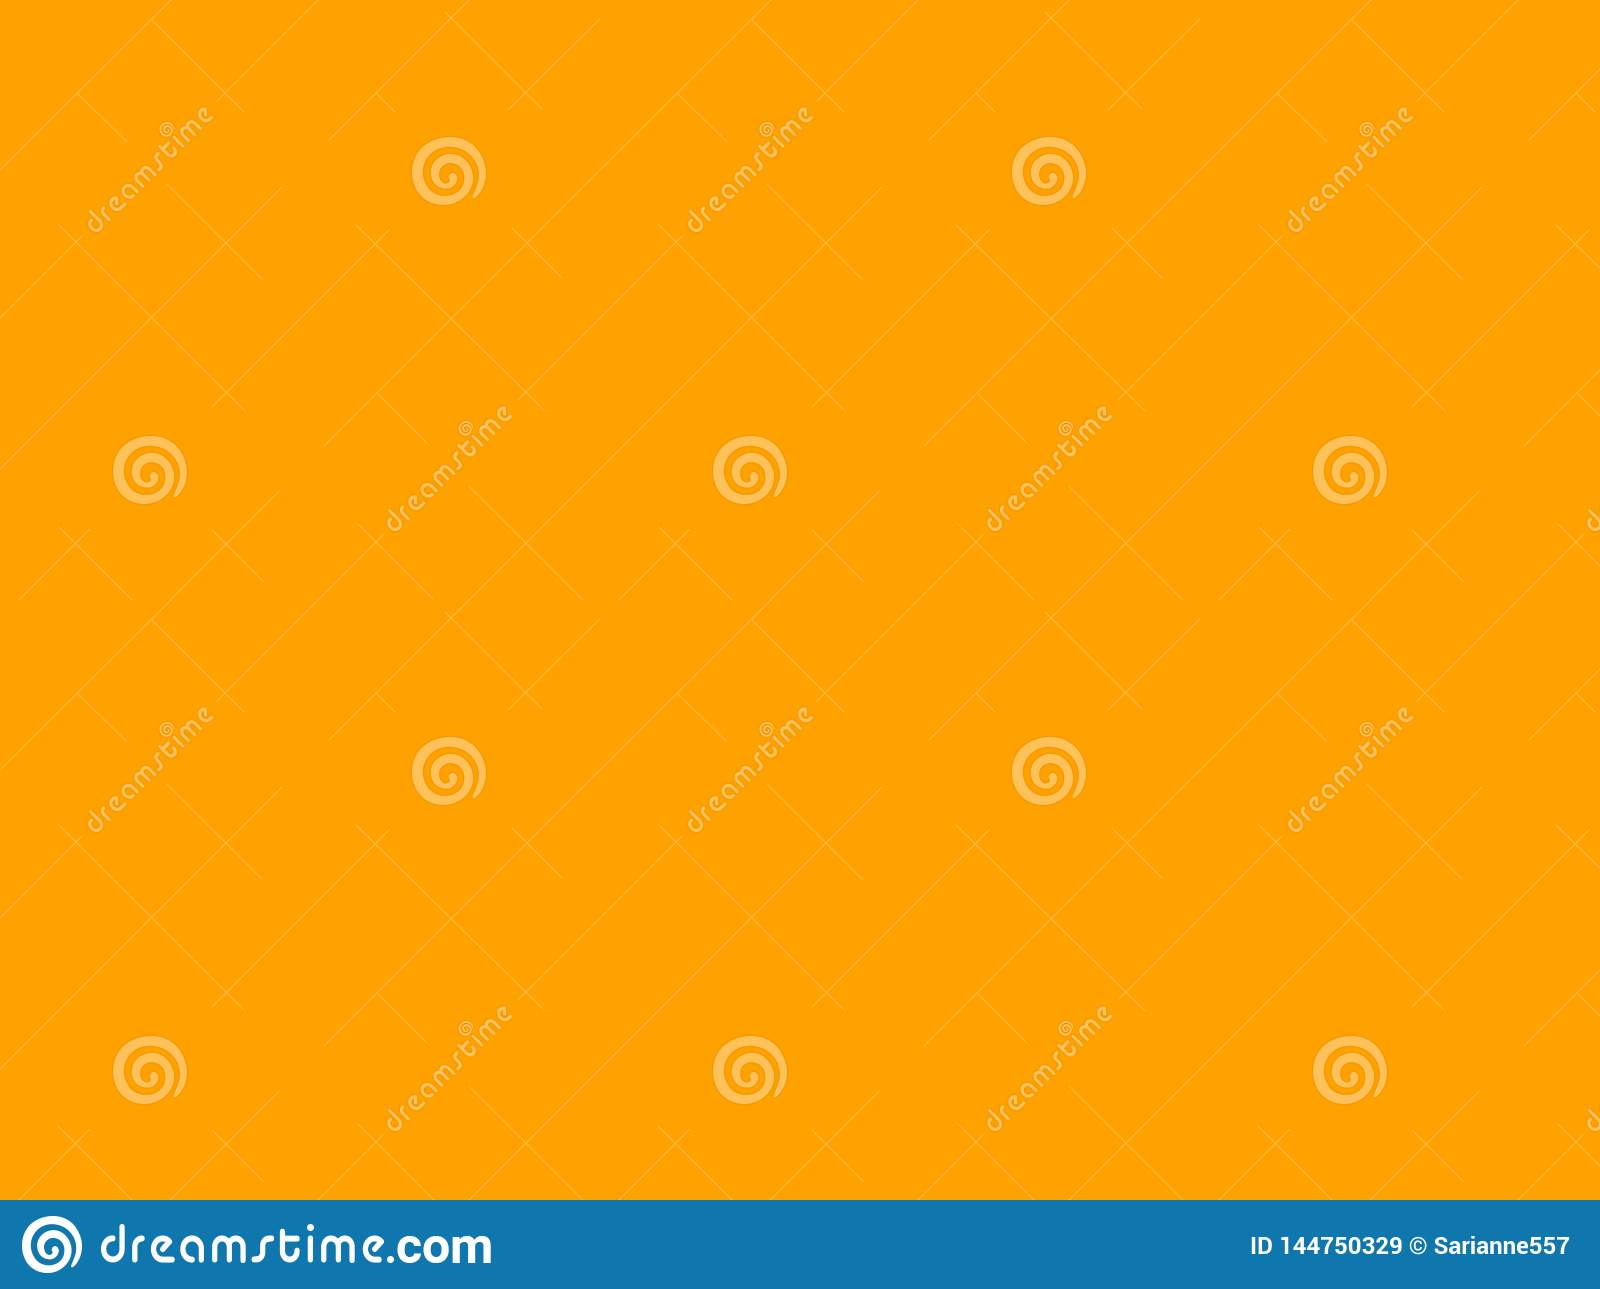 plain orange background wallpaper art illustration template smooth colour bright autumn fall snooth abstract backdrop 144750329